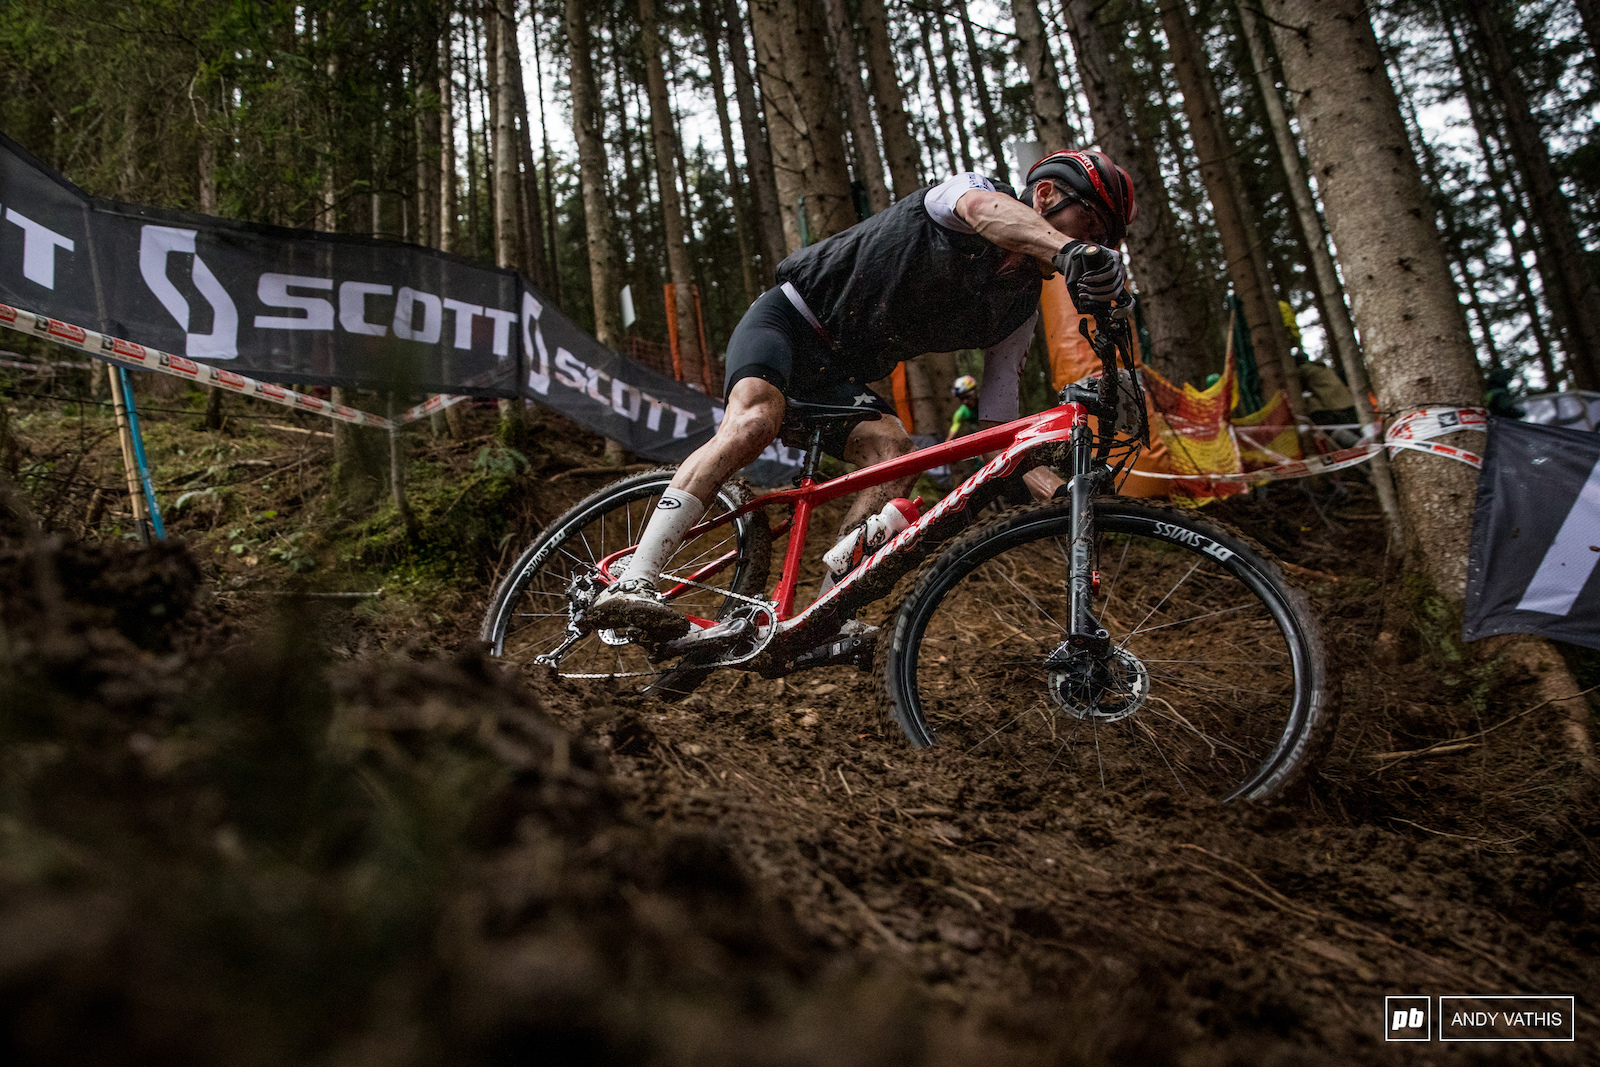 Mathias Flueckigger railing the inside rut. Second place for him today.